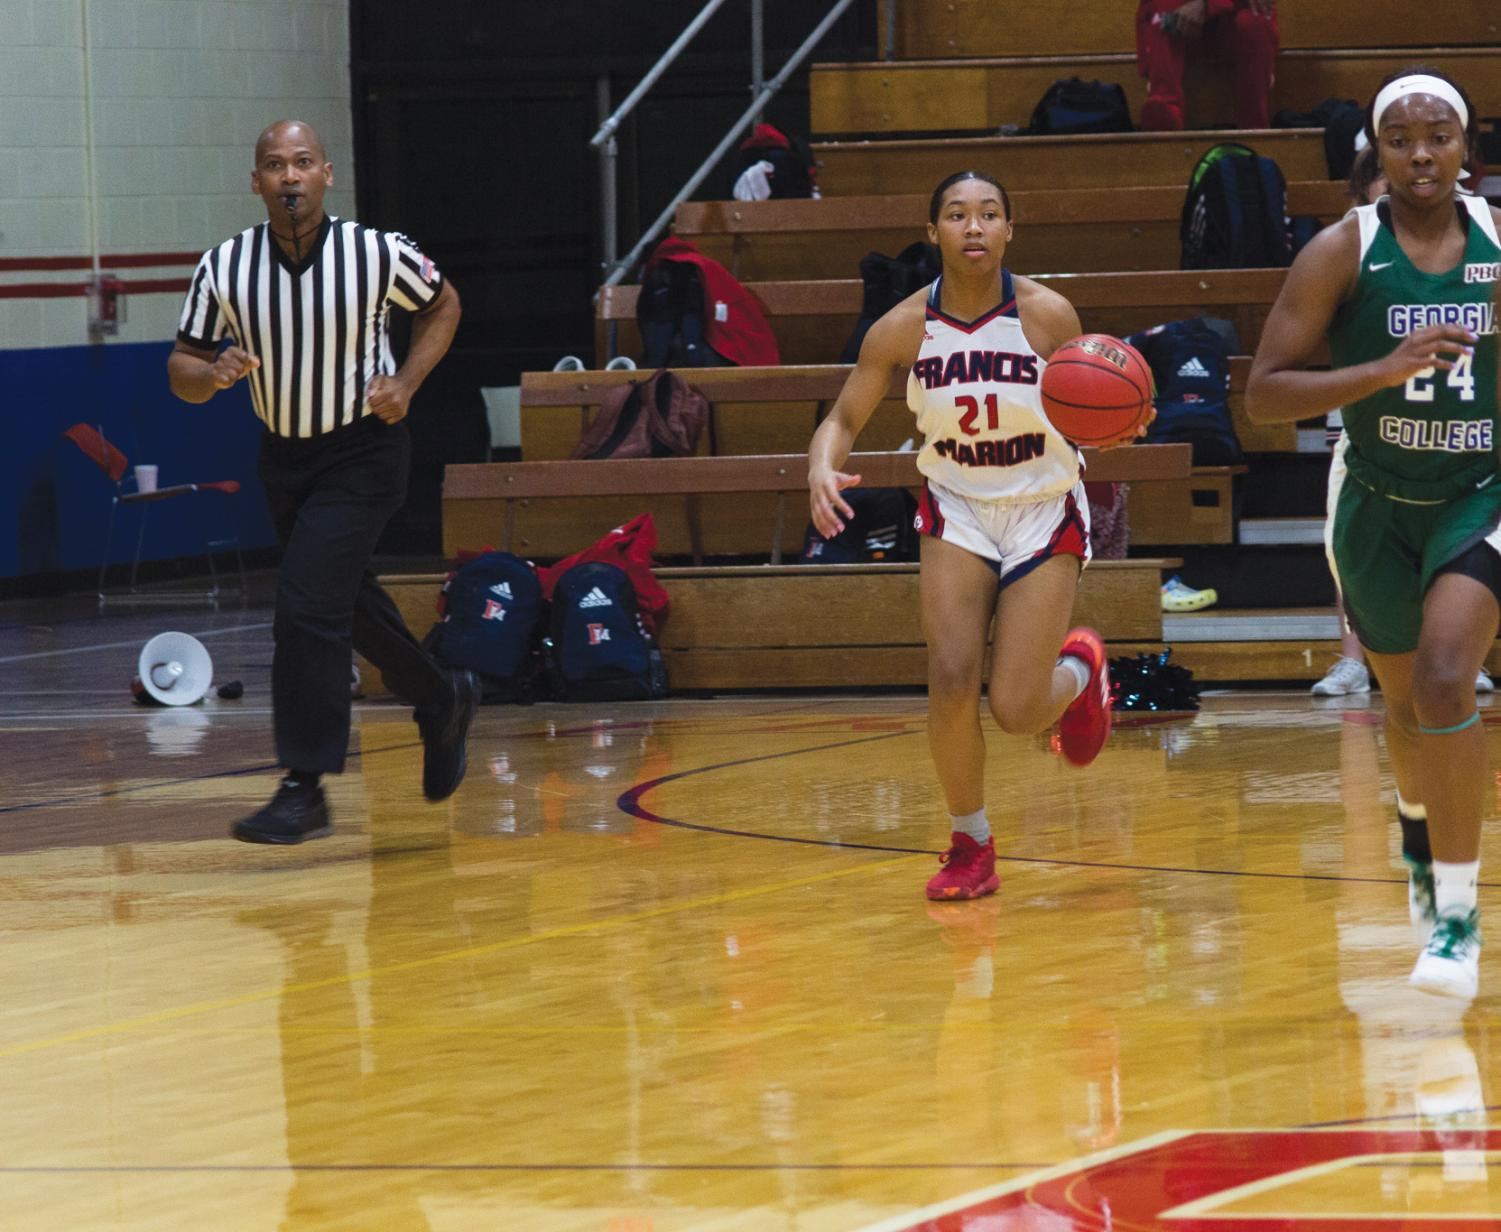 #21, Scarlett Gilmore, makes her way down the court.